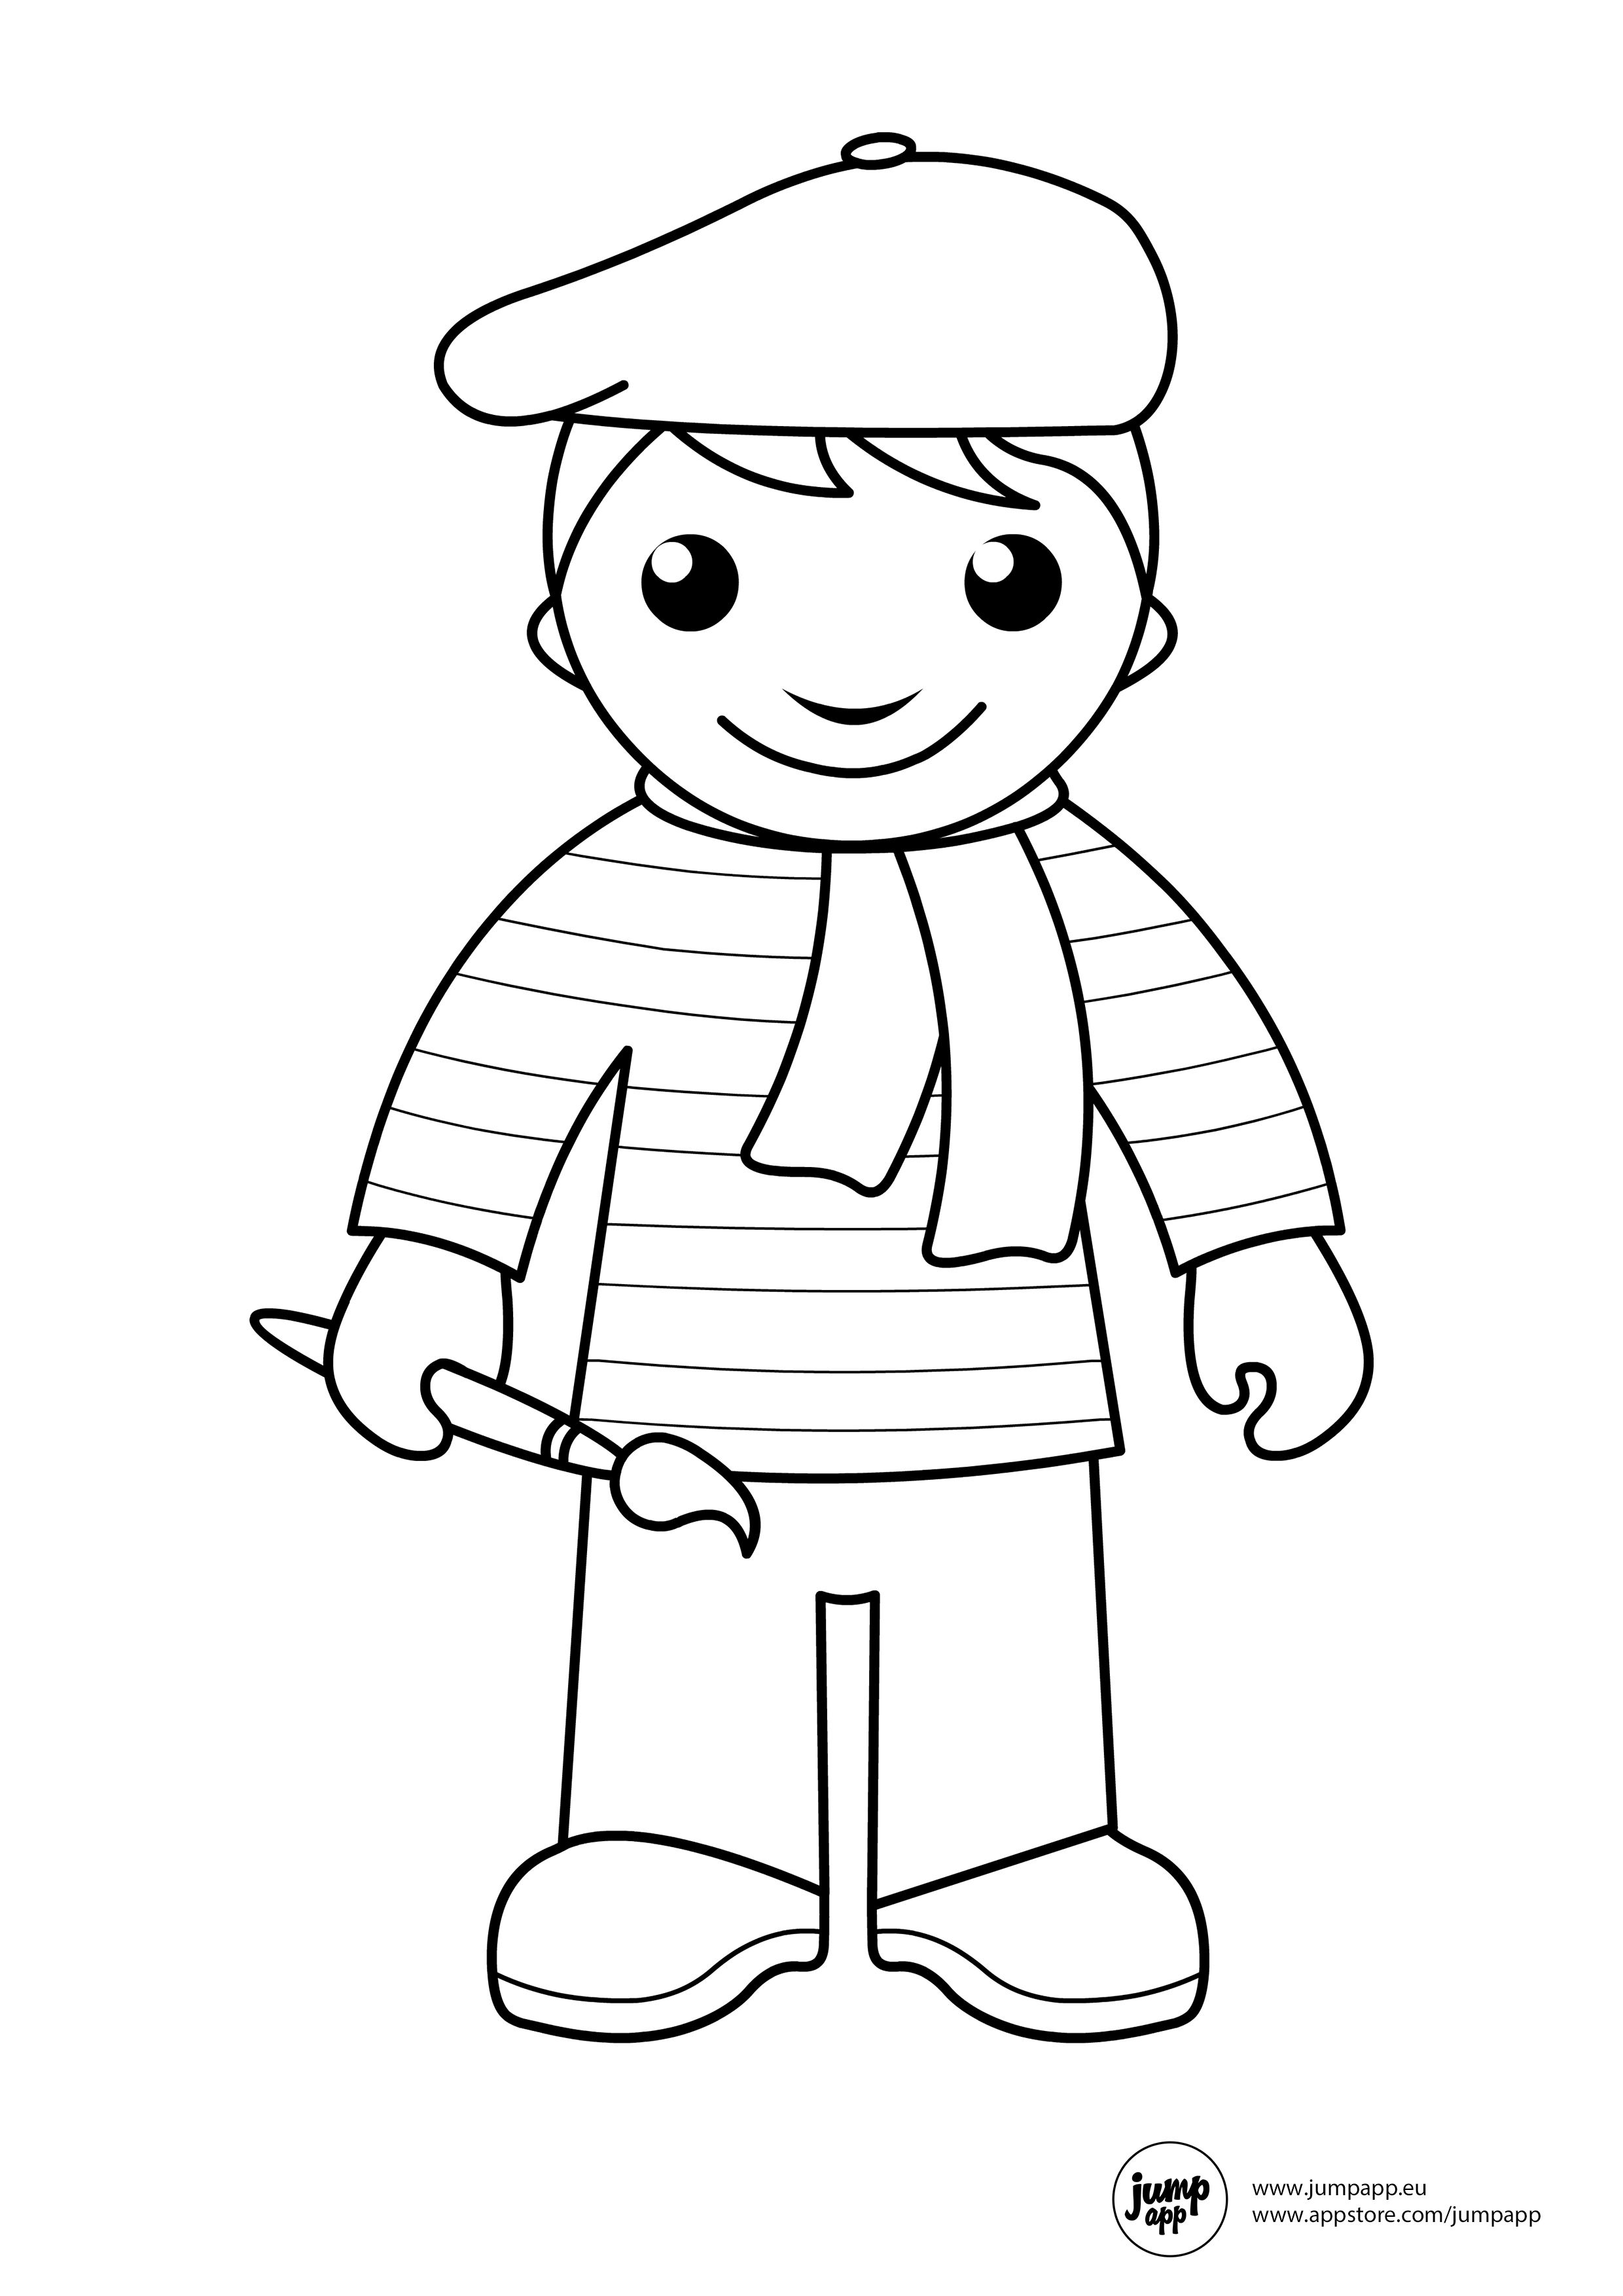 artist | Printable Coloring Pages | Pinterest | Berufe, Malen und Kind